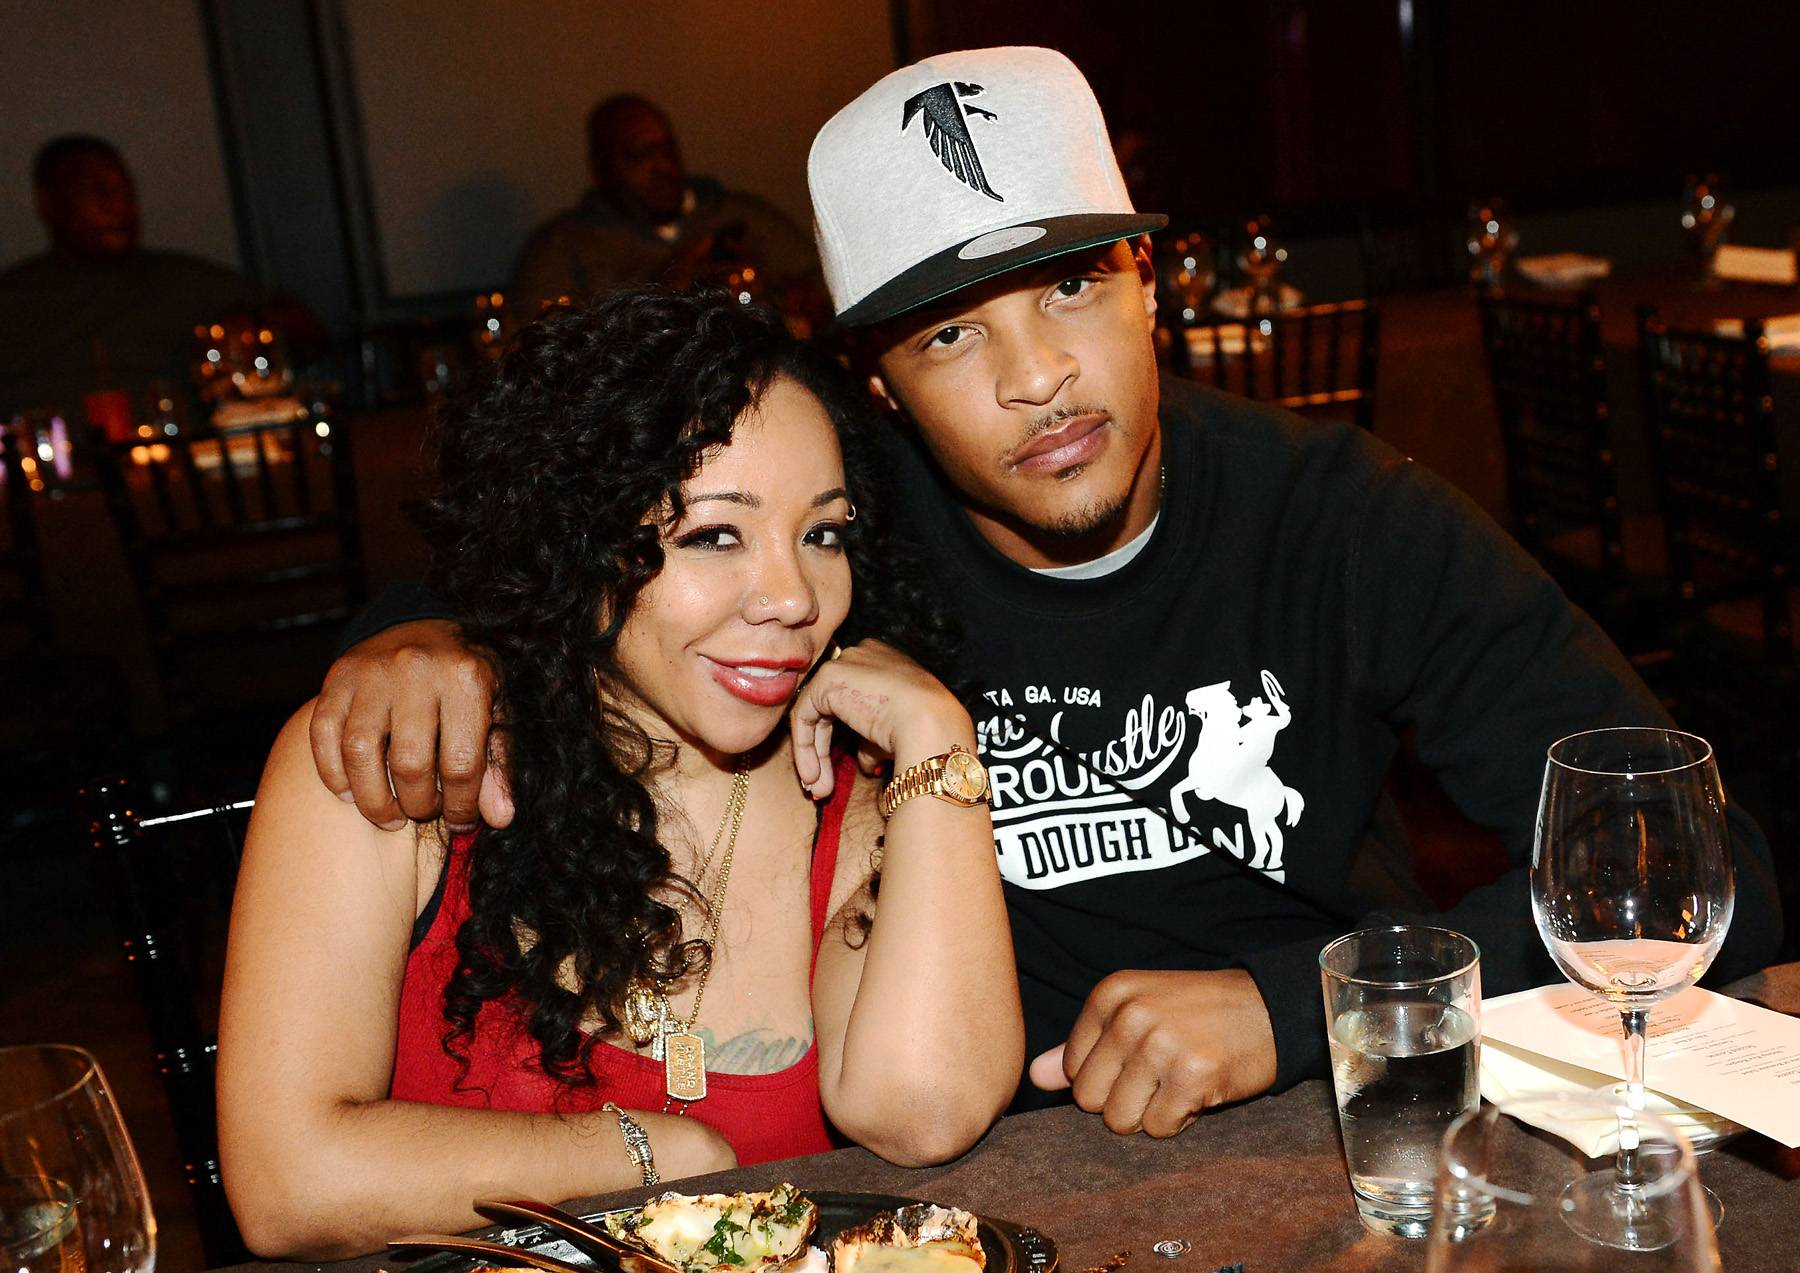 """Tiny and T.I. - T.I. and Tiny have been labeled the """"Hip Hop Huxtables"""" by the masses and for good reason. Now, in the second season of T.I. & Tiny:The Family Hustle, the world has officially fallen in love with the Harris family. Despite whatever preconceived notions folks have had about T.I., his love, dedication and support that he gives to his family make him quite possibly one of the most lovable fathers out there. Oh, and this couple is S-E-X-Y! (Photo: Rick Diamond/Getty Images)"""